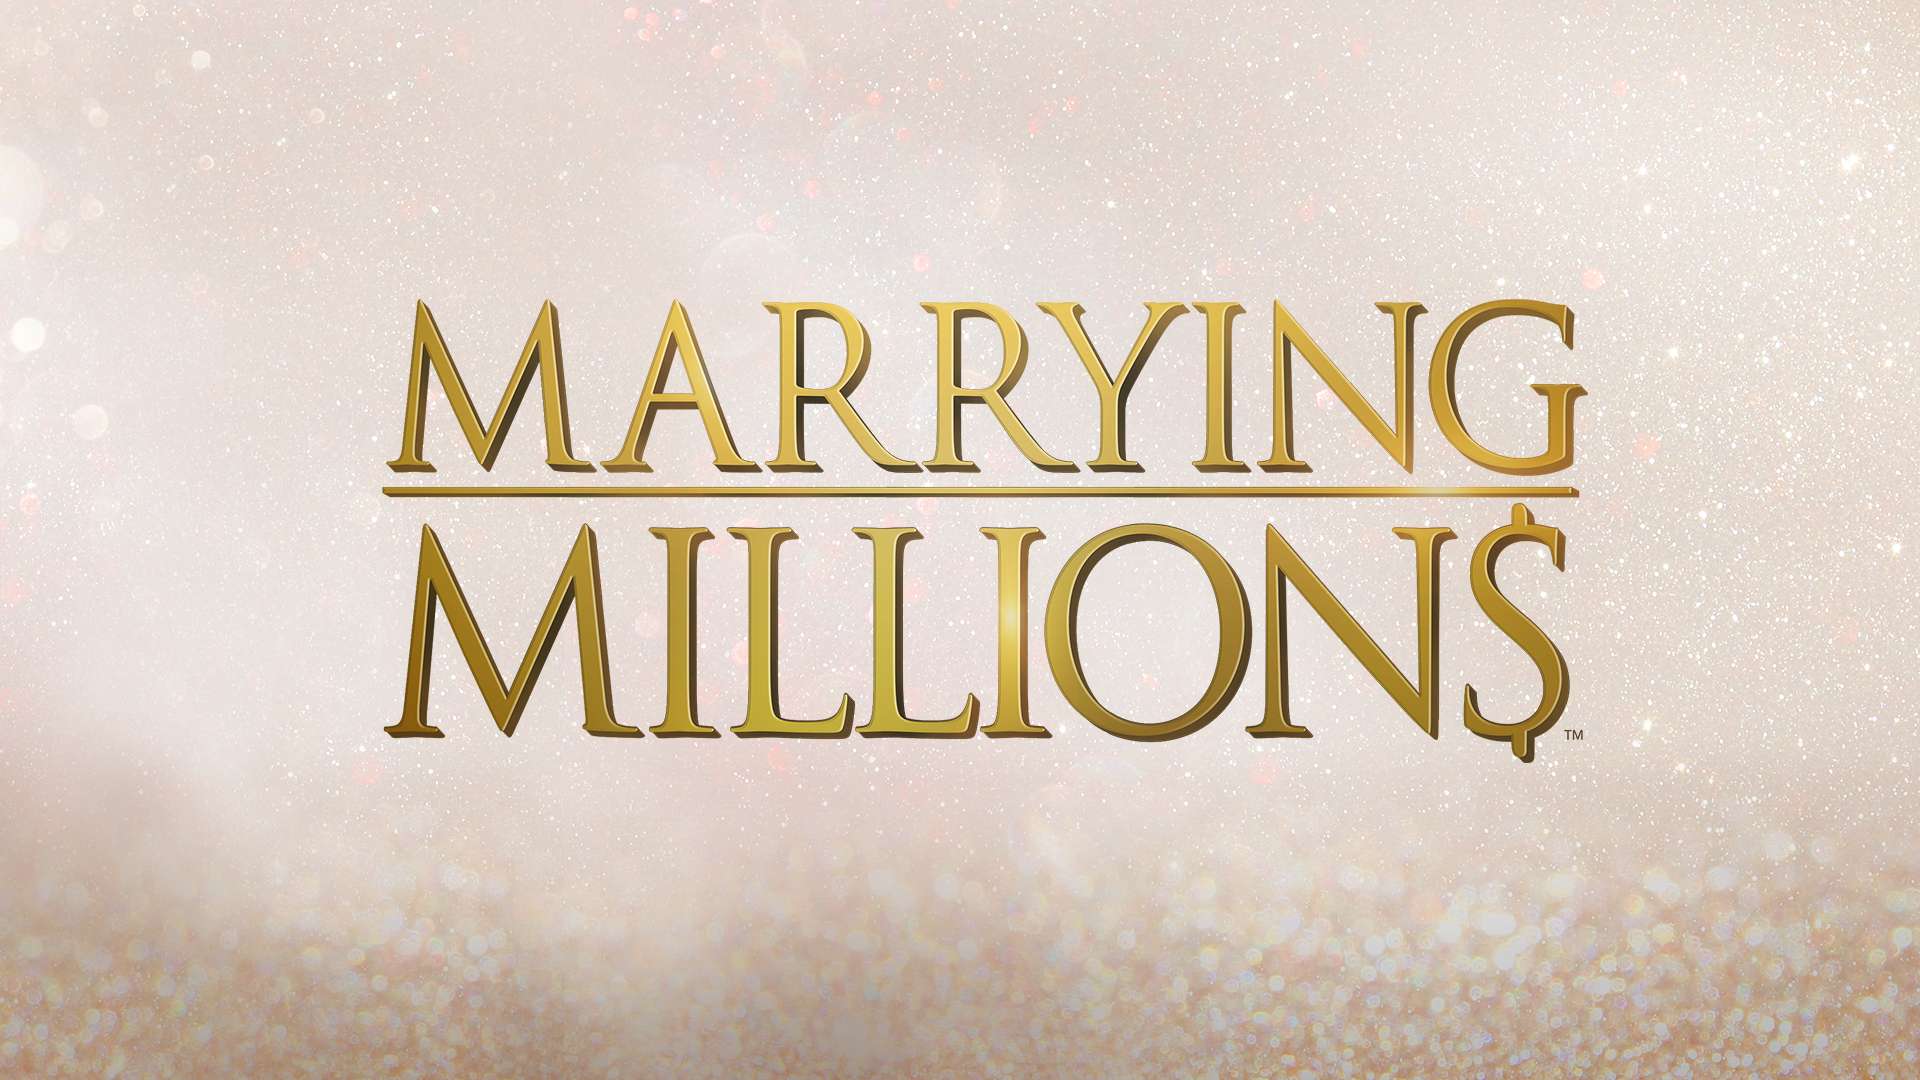 marrying-millions-S1-show-index-1920x1080.jpg